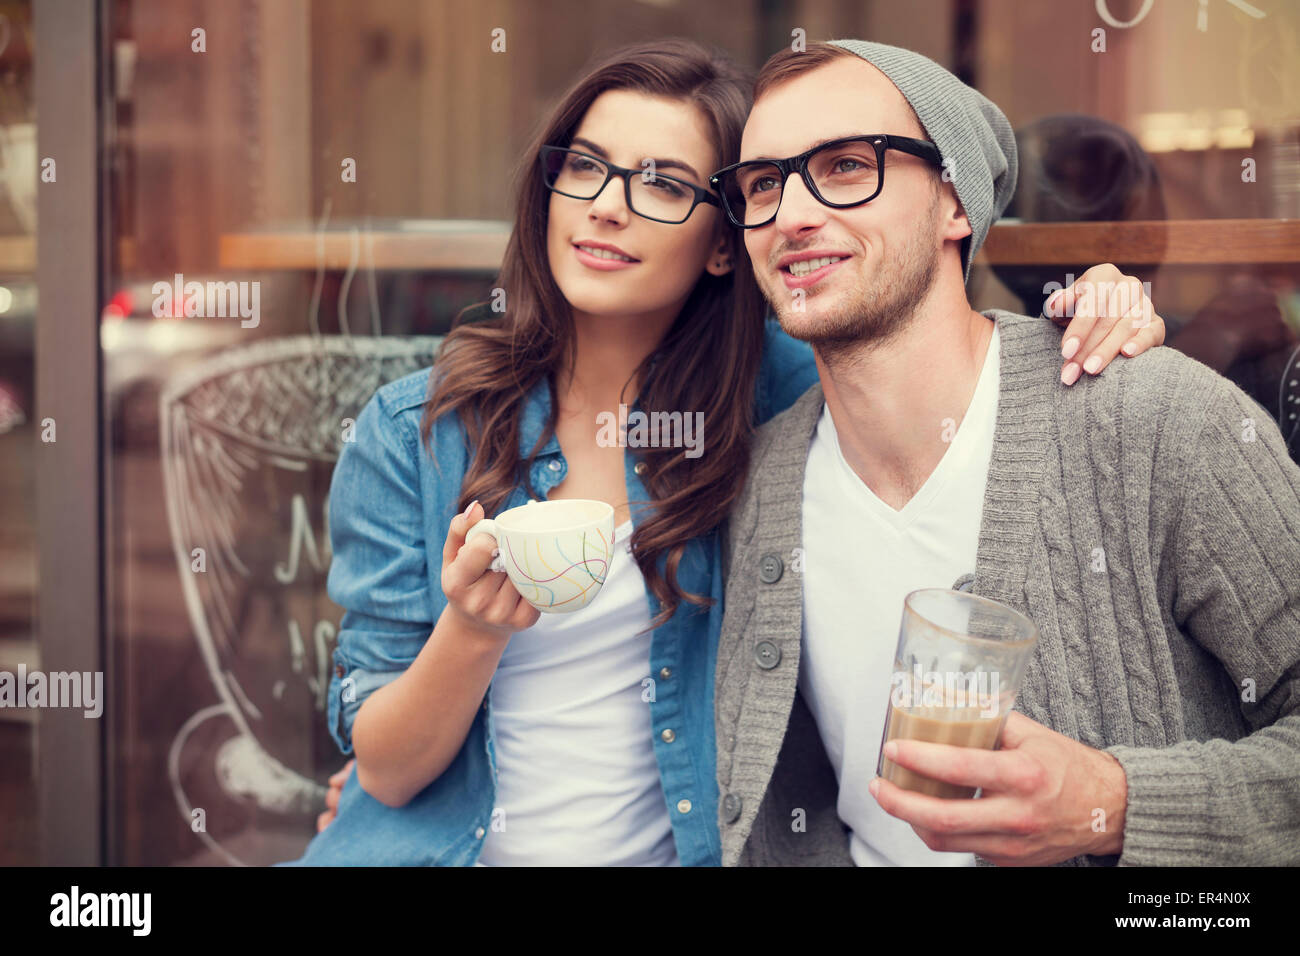 Young fashion couple drinking coffee outside of cafe. Krakow, Poland - Stock Image